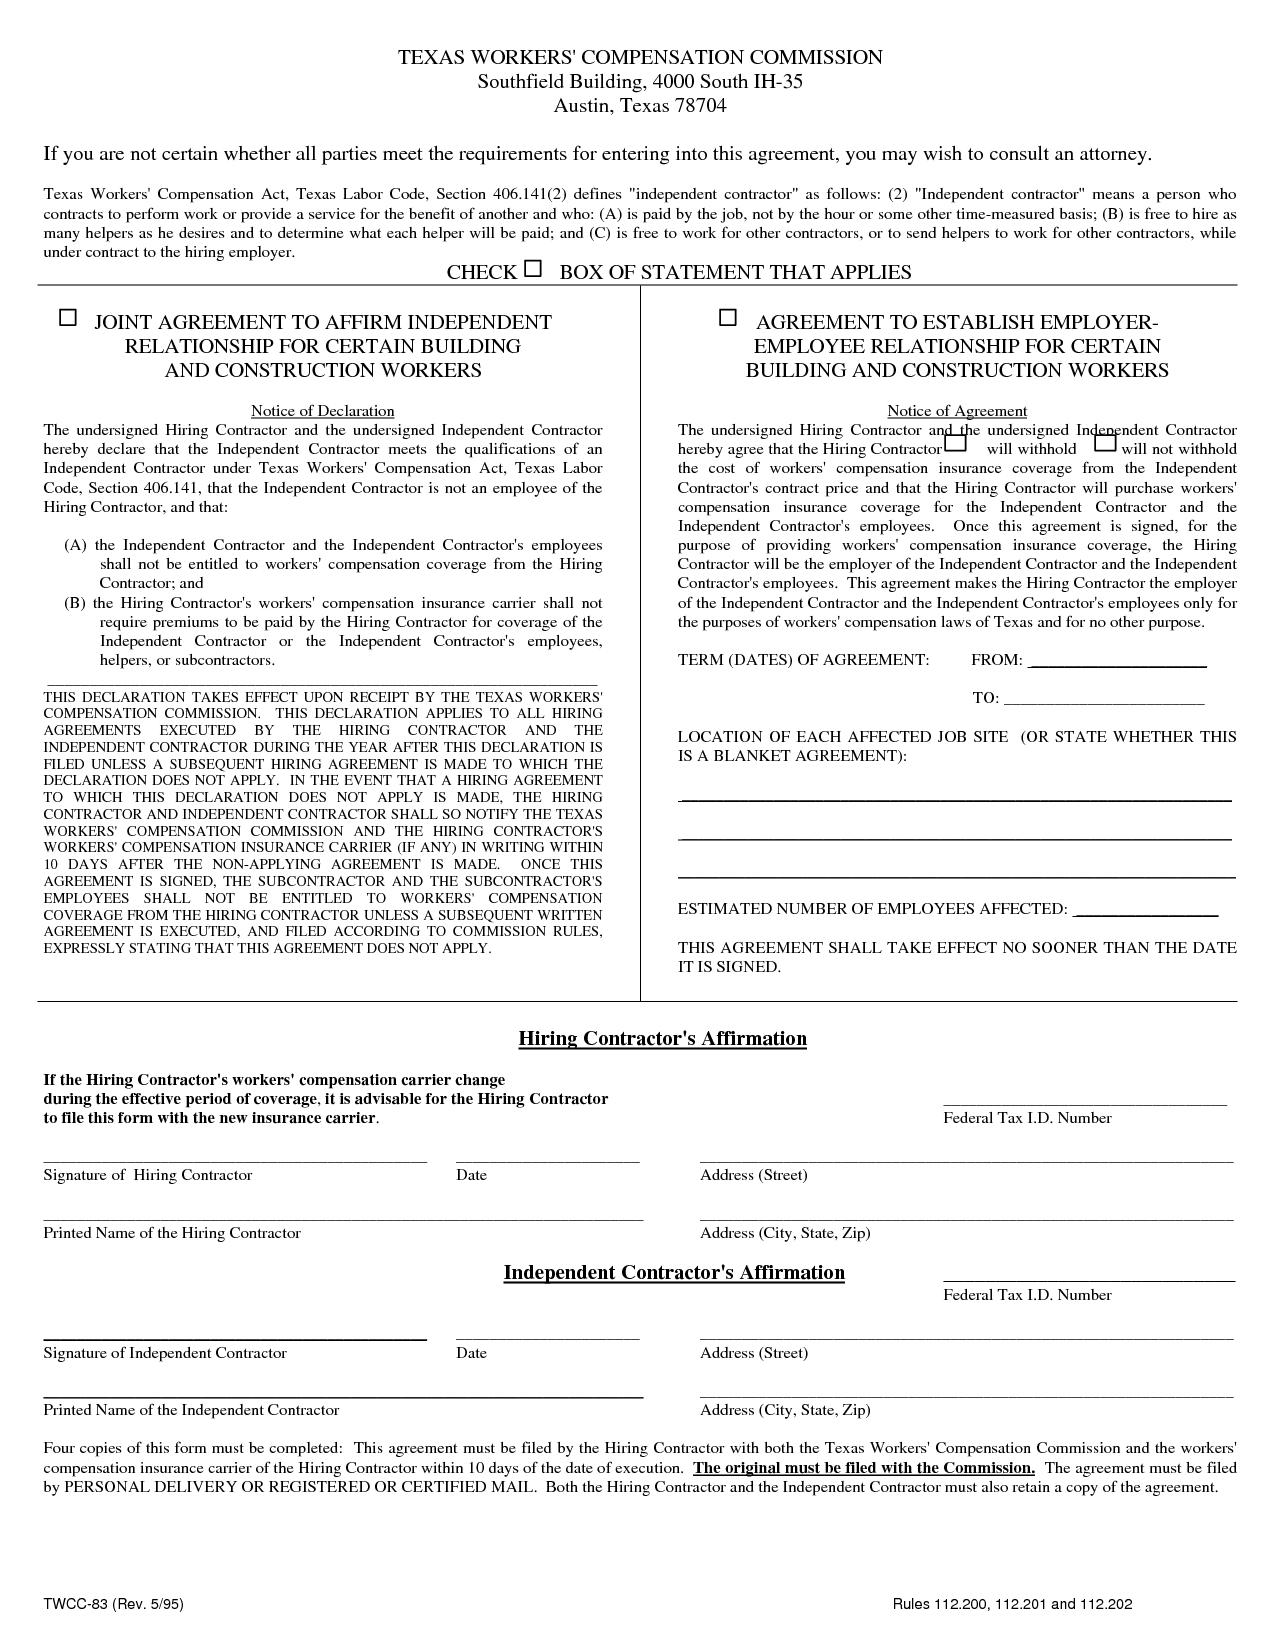 Workers Compensation Waiver Form Texas